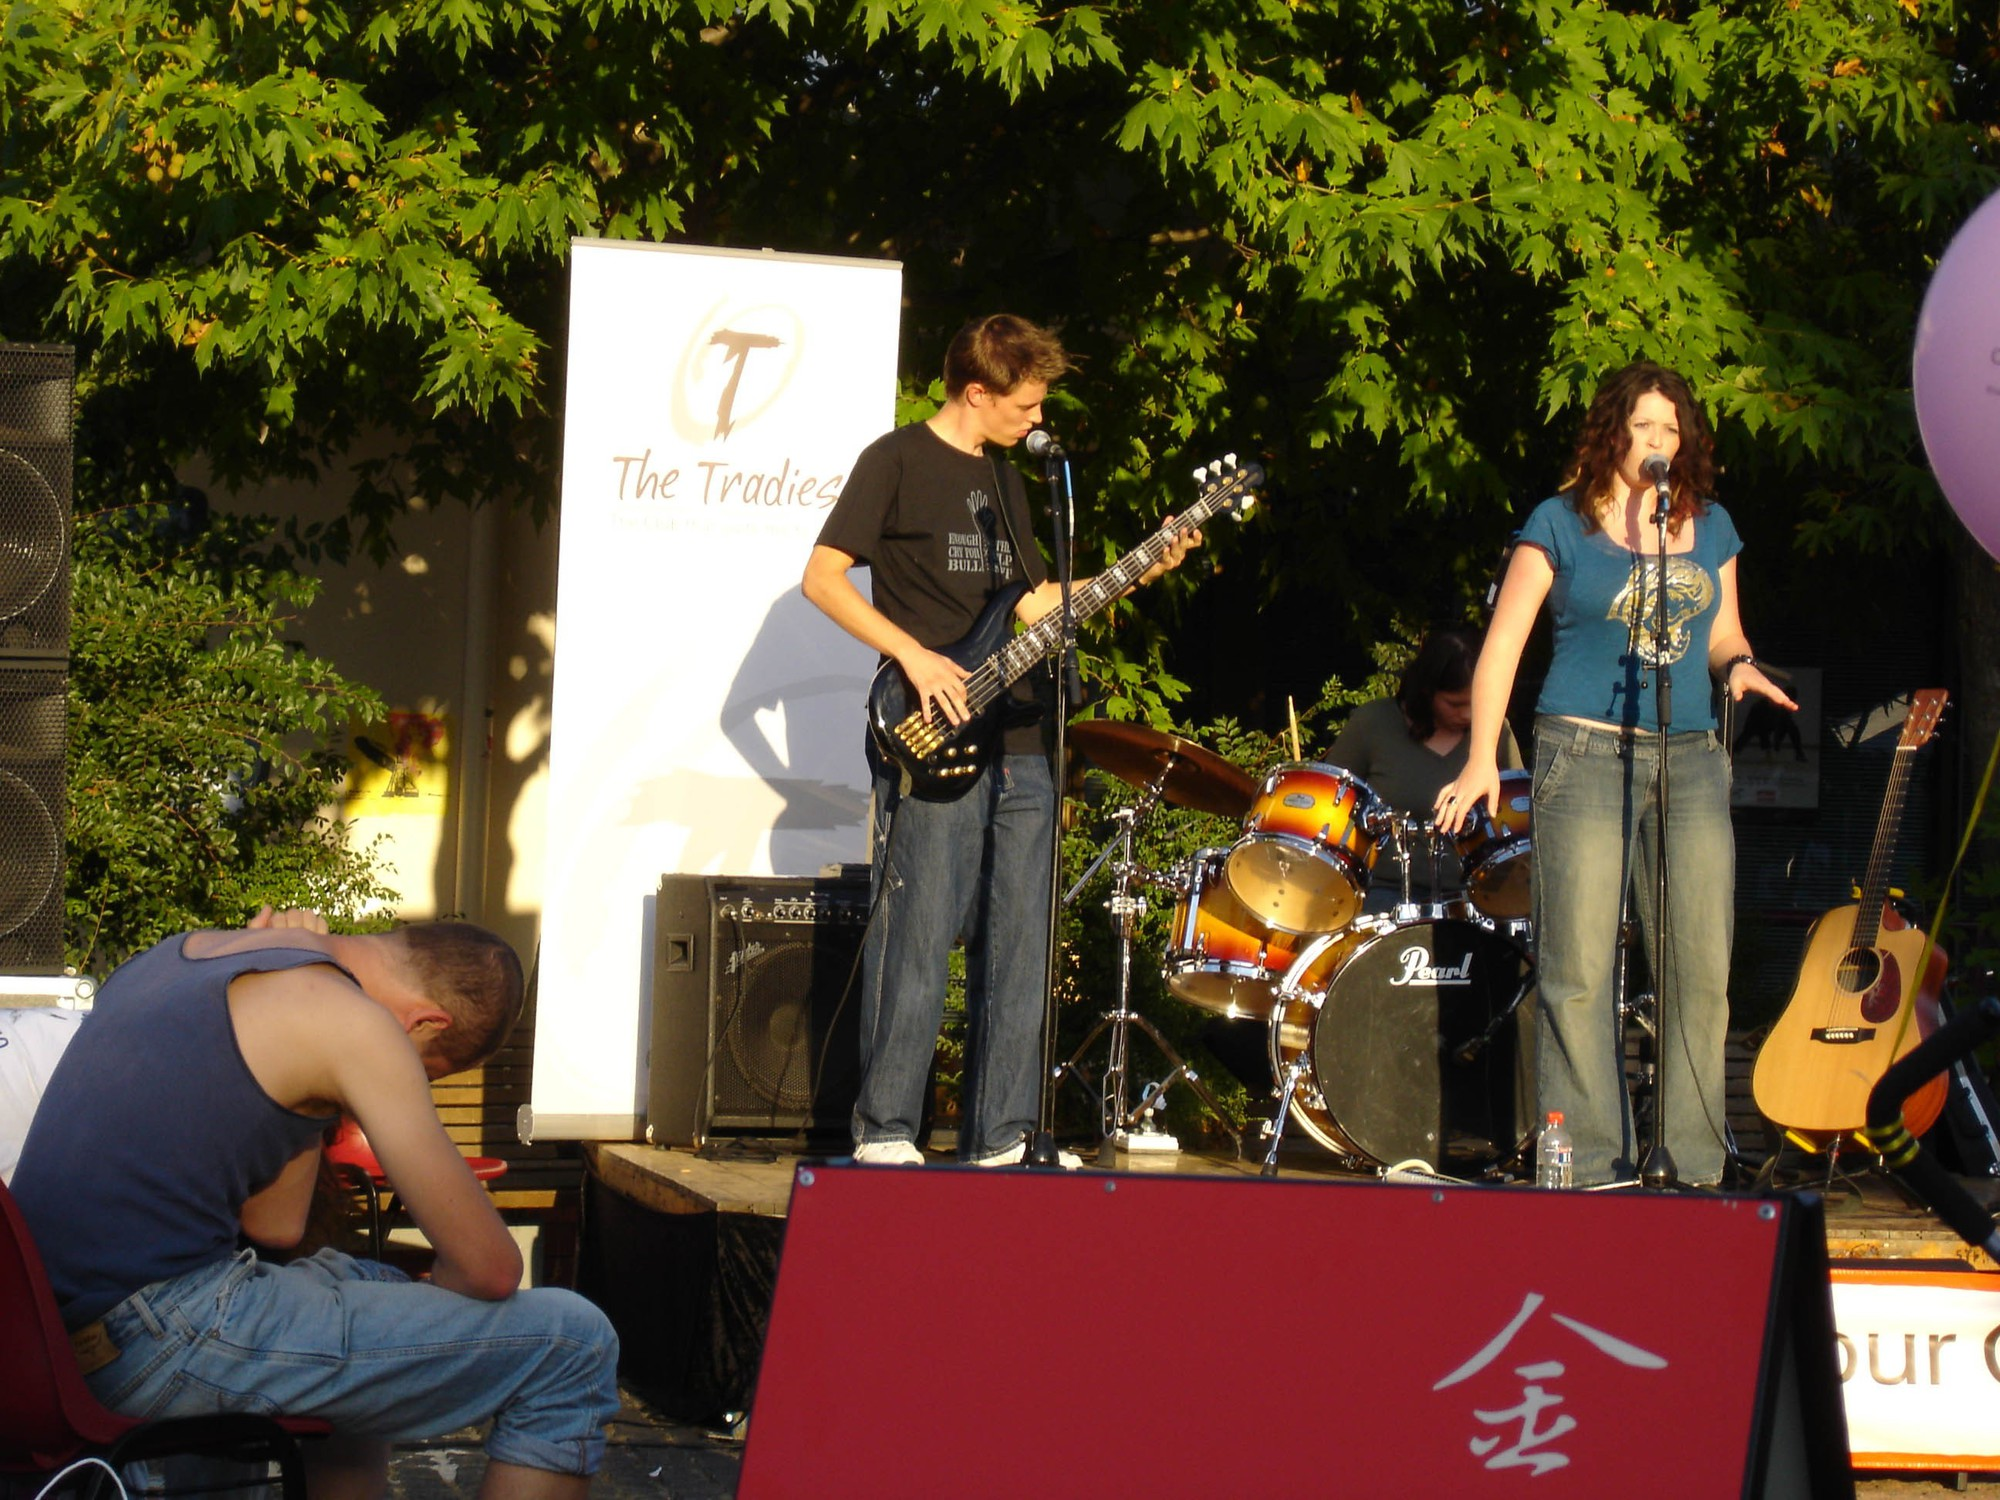 Jack playing guitar on stage with one of his rrock bands.